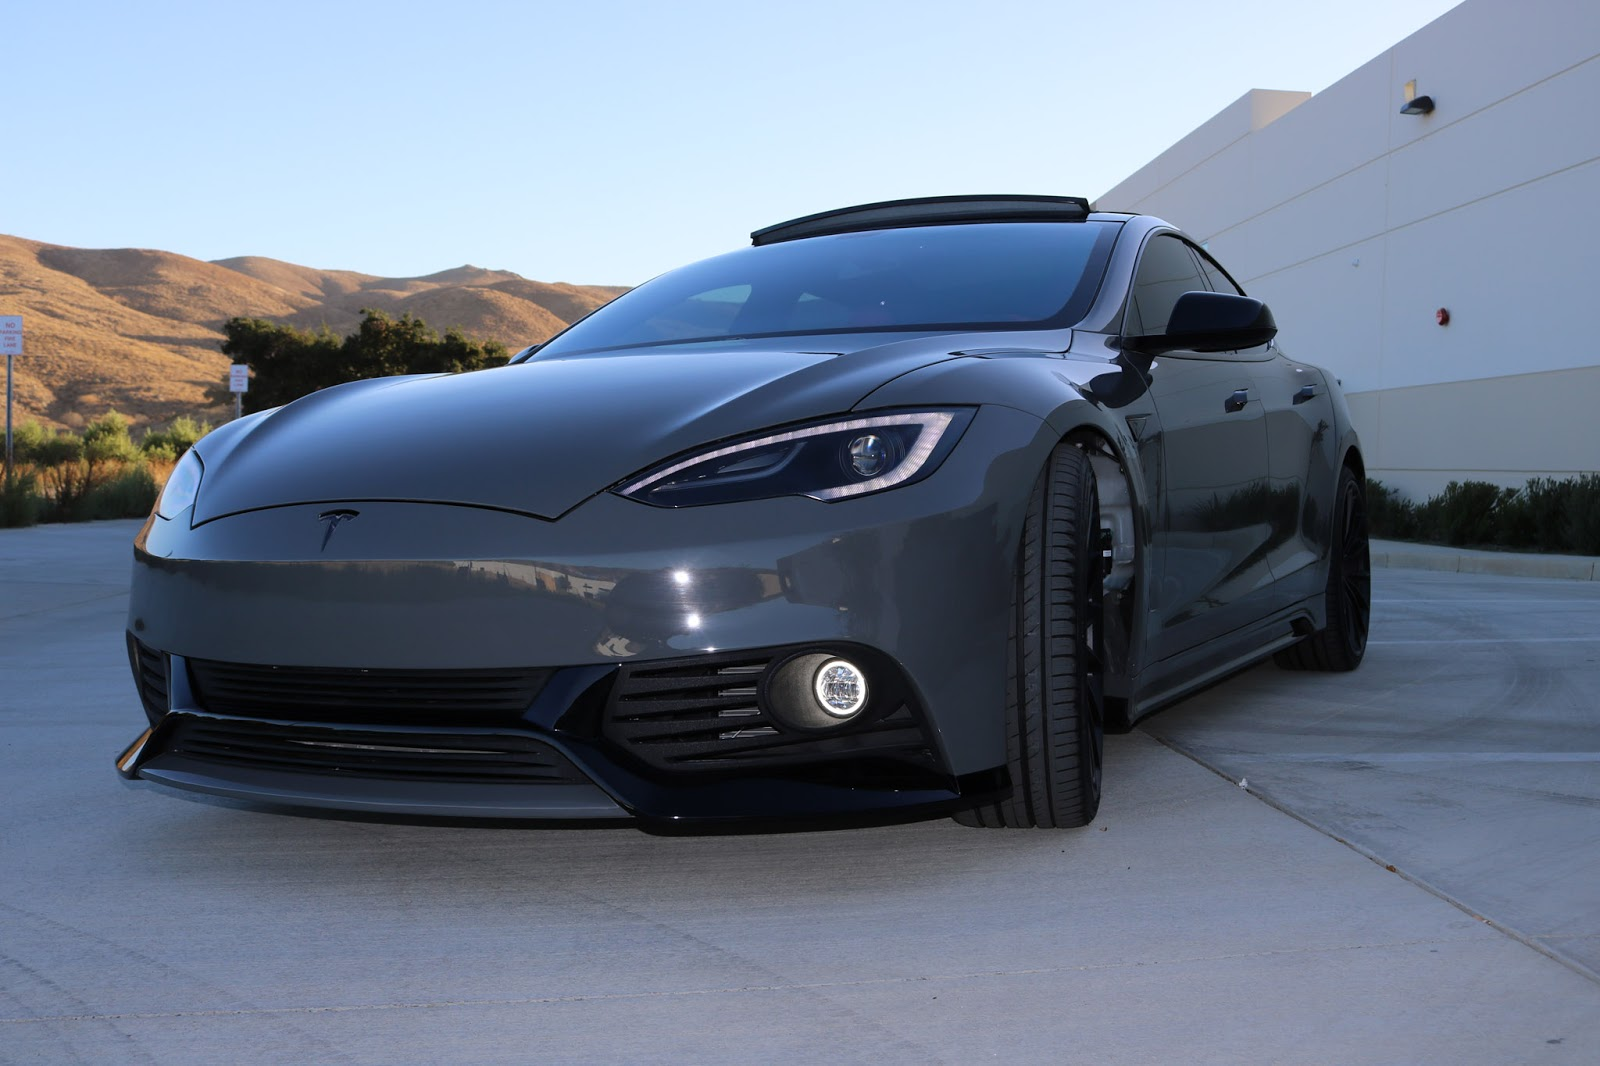 Tesla Model S Has $40,000 Paint and $6,500 Body Kit by Zero to 60